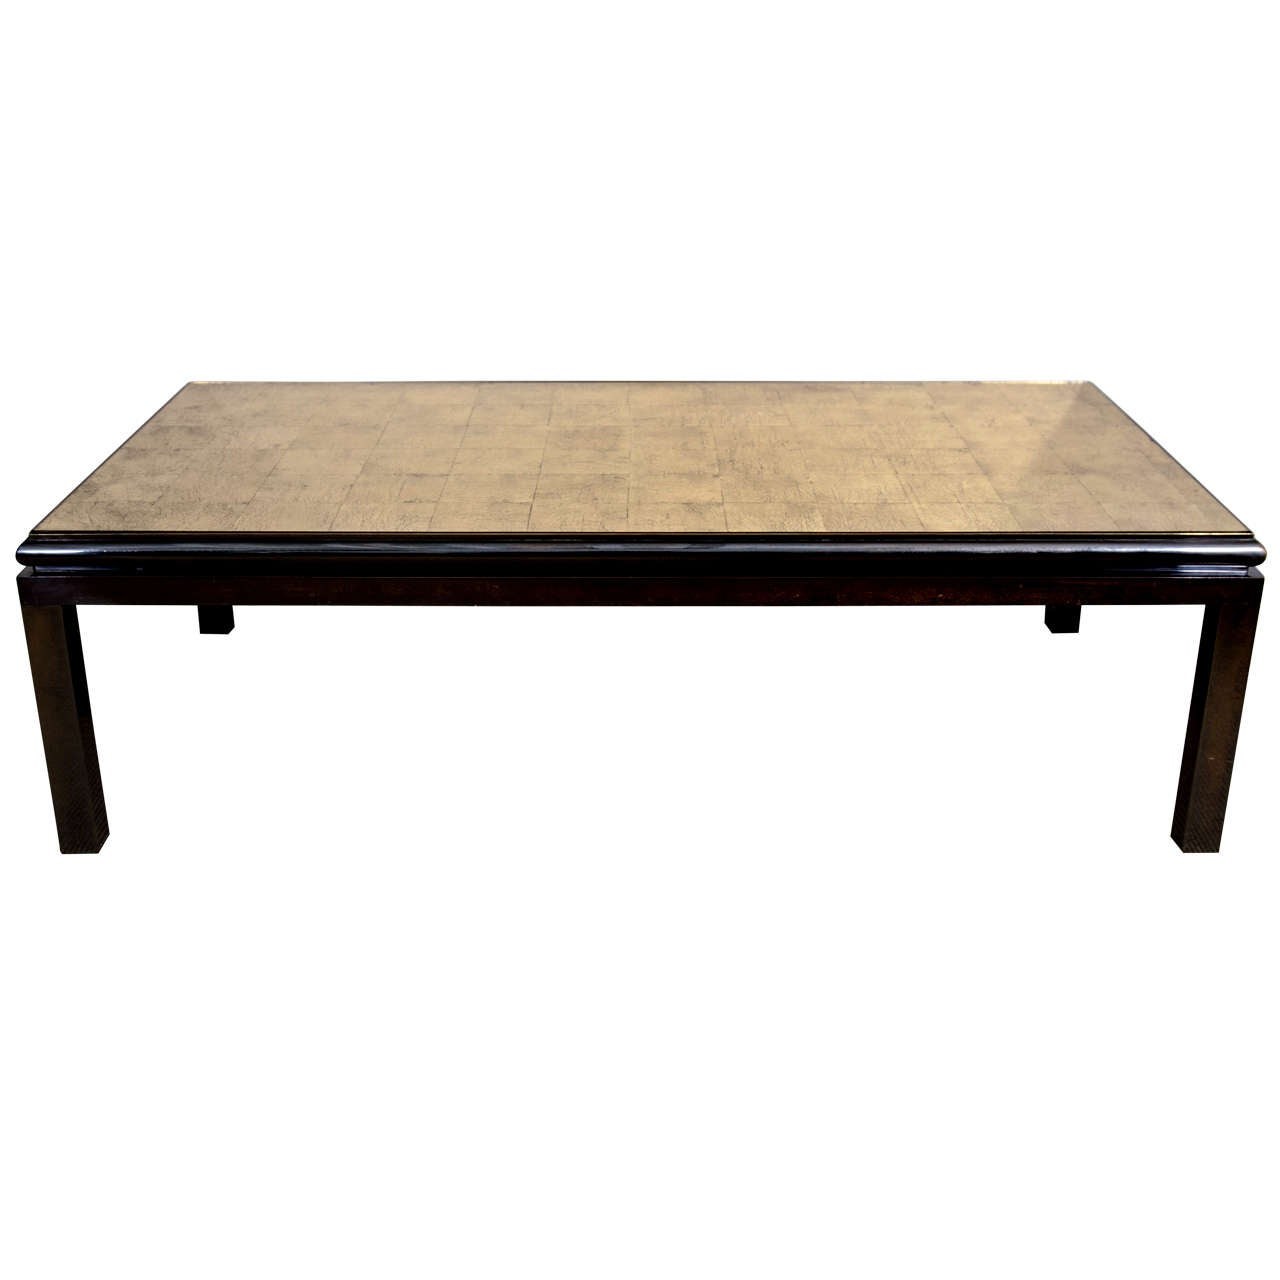 A Maison Jansen Verre Eglomise Top And Gun Metal Base Coffee Table At 1stdibs